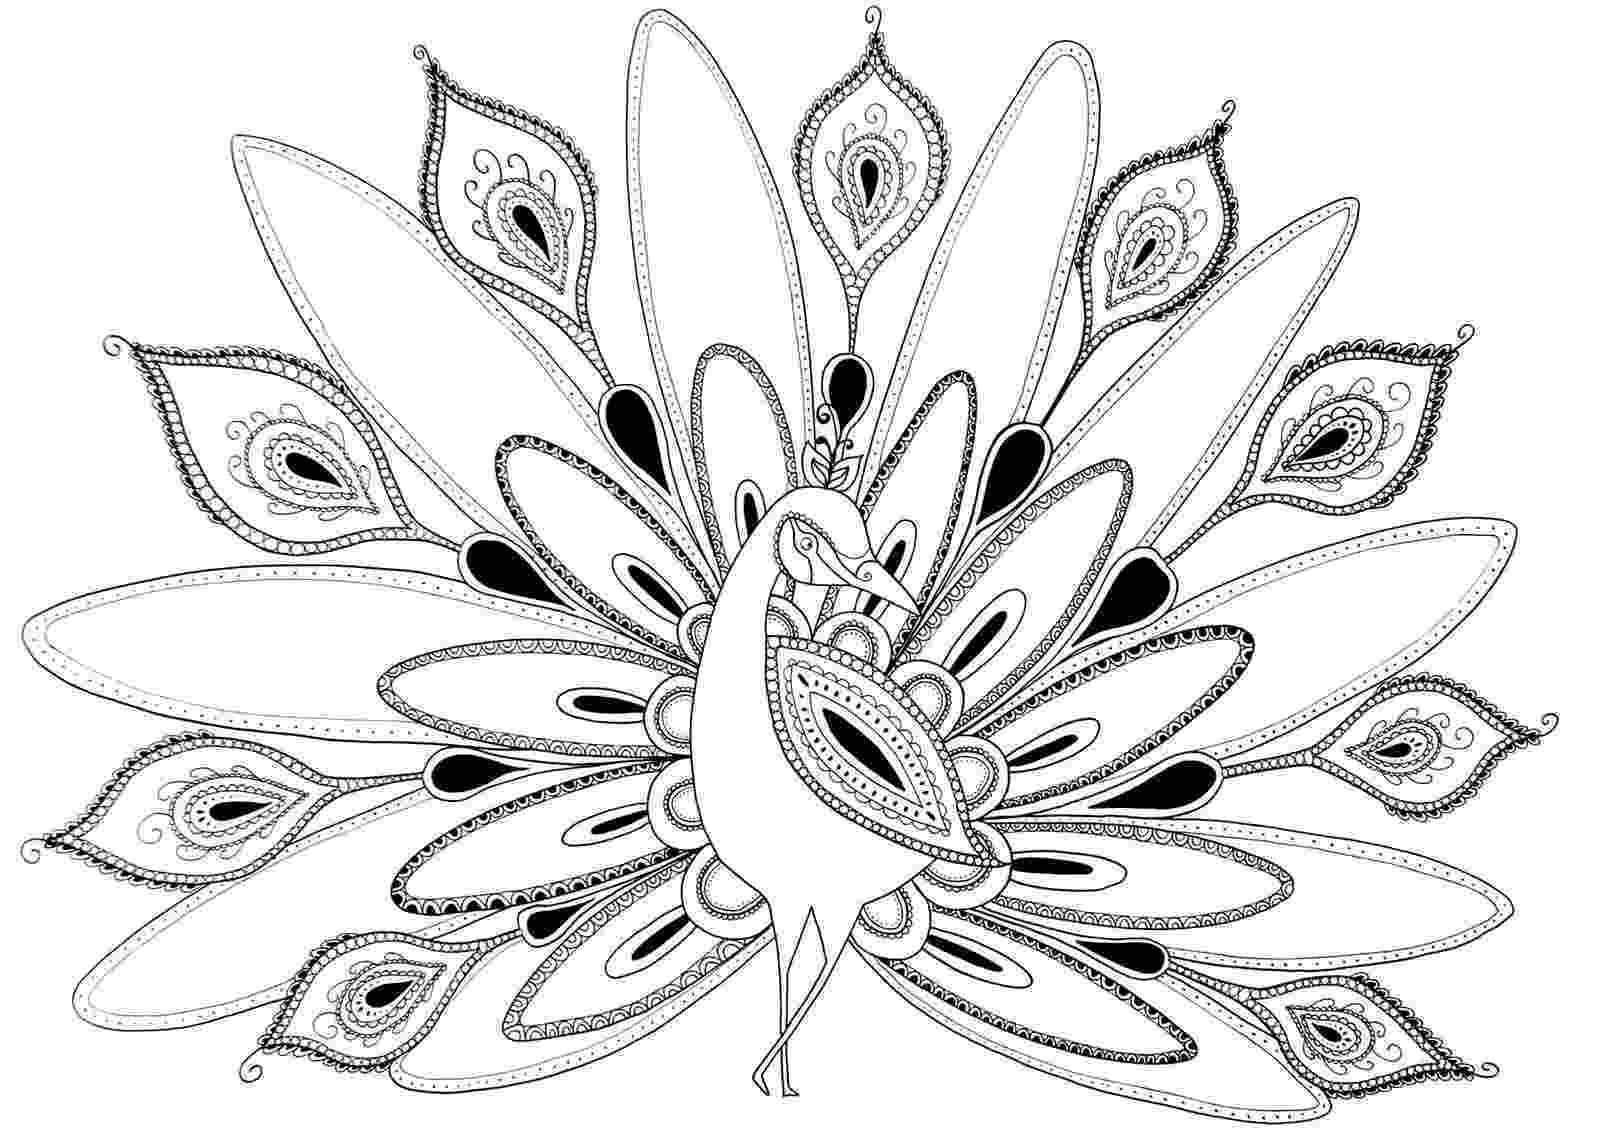 colouring pictures of peacock peacock coloring pages to download and print for free peacock colouring of pictures